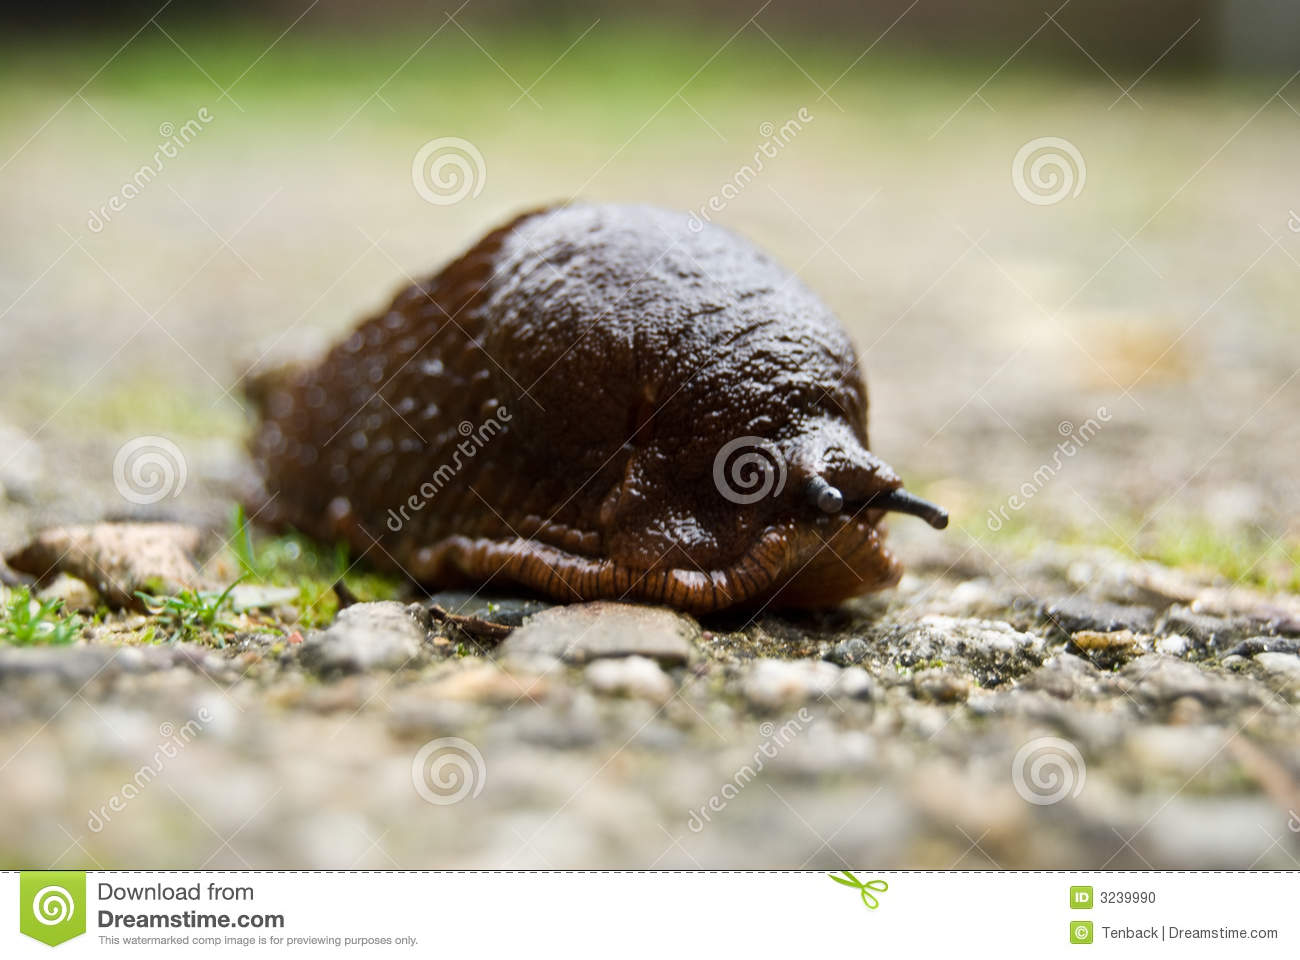 Naked Snail on the road stock photo. Image of naked